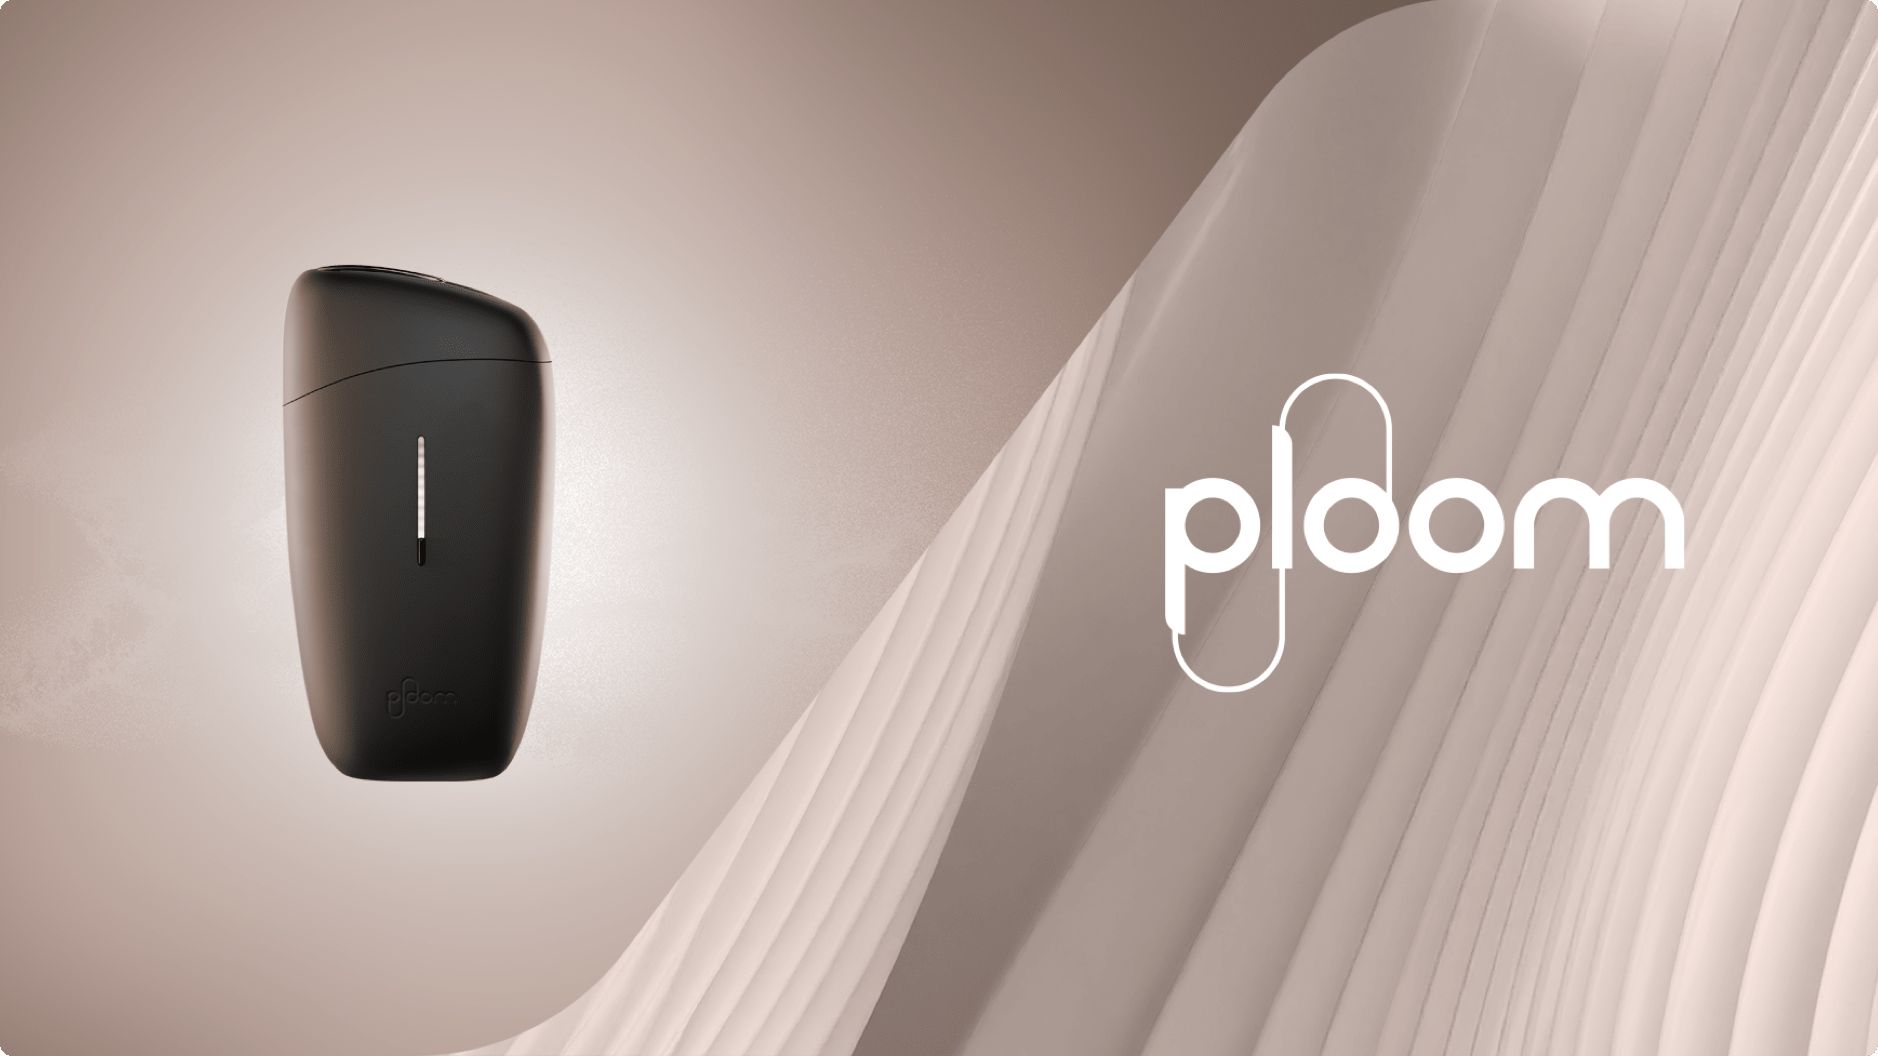 Ploom heated tobacco, 5 things to know